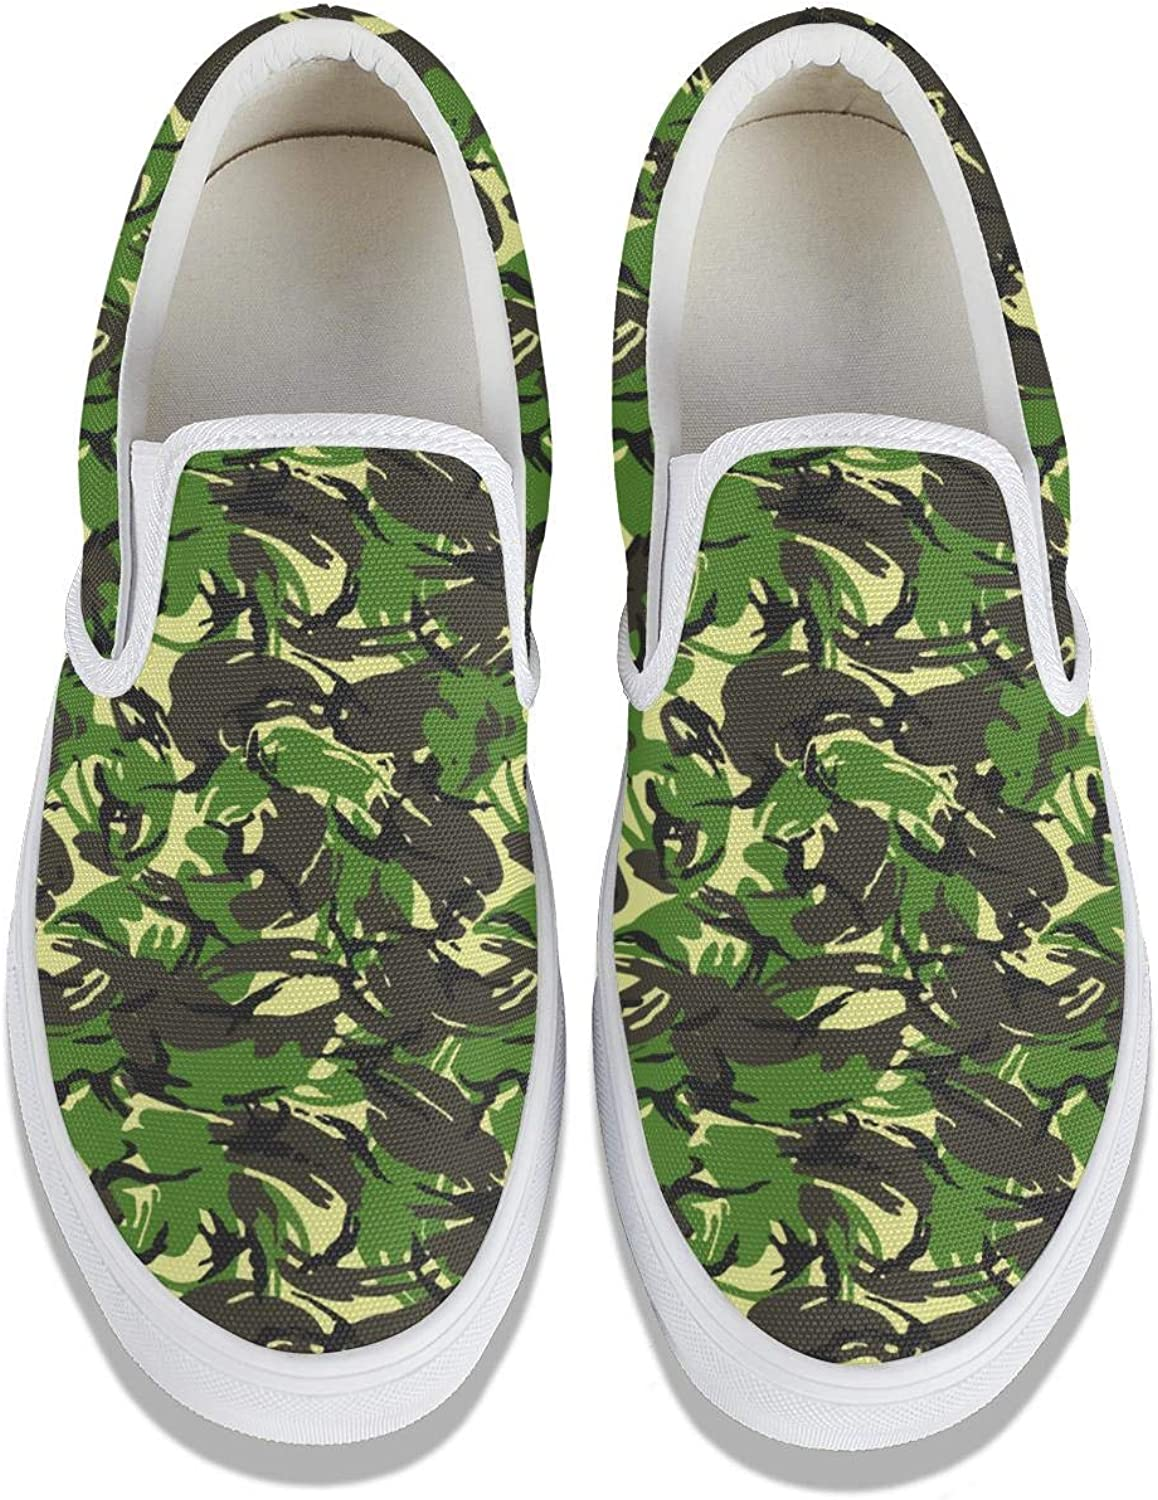 SEERTED Camo Camouflage Shoes Slip-On Cool Sneakers for Womens Print White